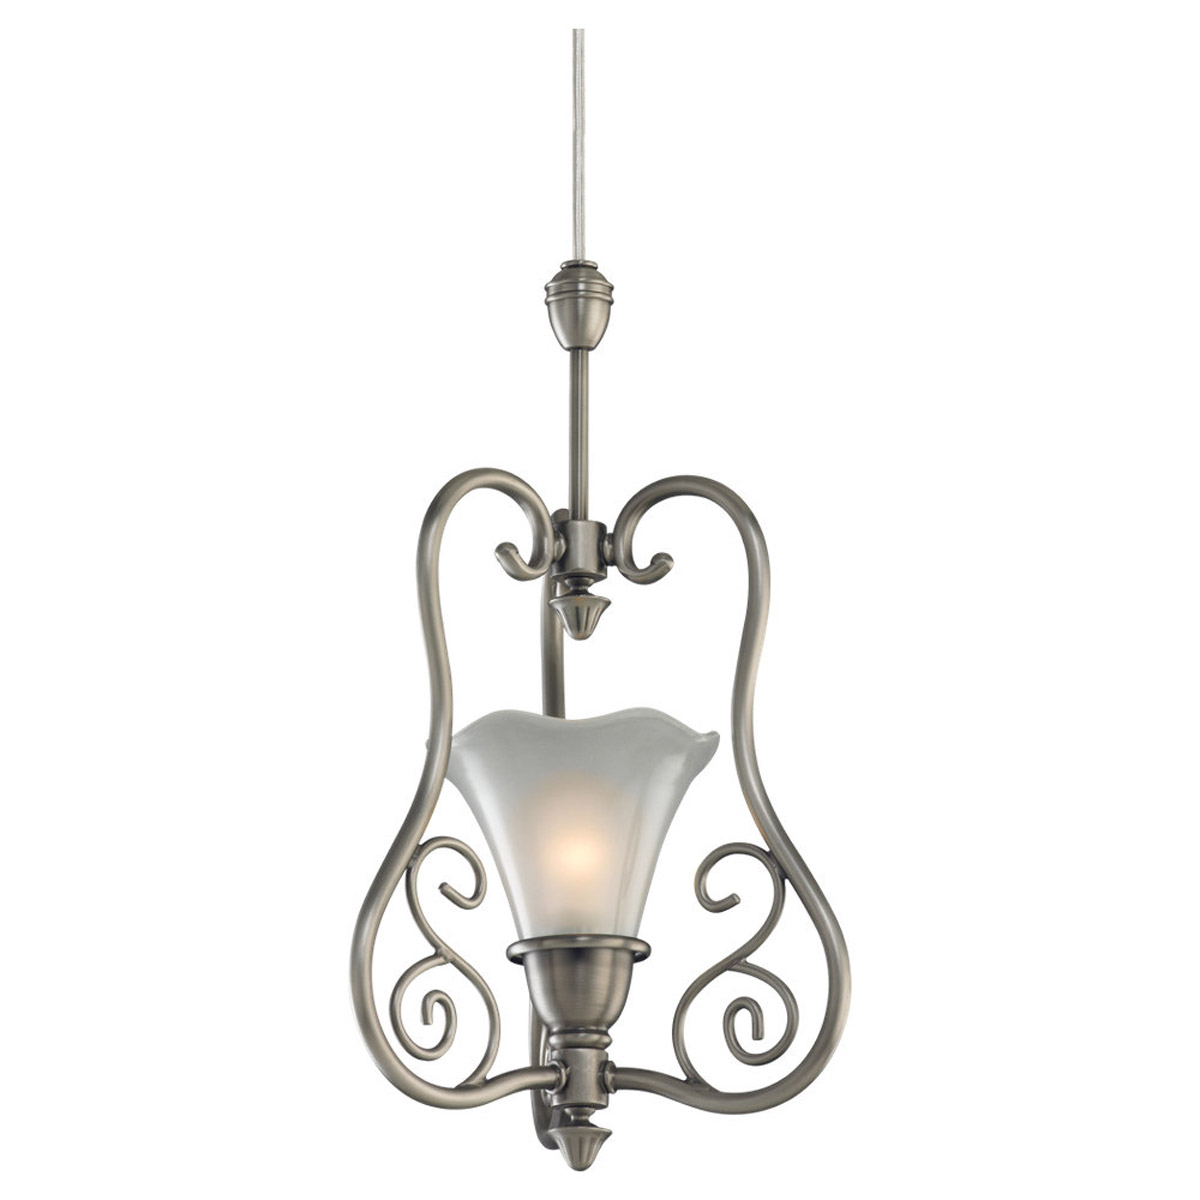 Sea Gull Lighting Trudy 1 + 1 Light Complete Pendant Assembly in Antique Brushed Nickel 94565-965 photo